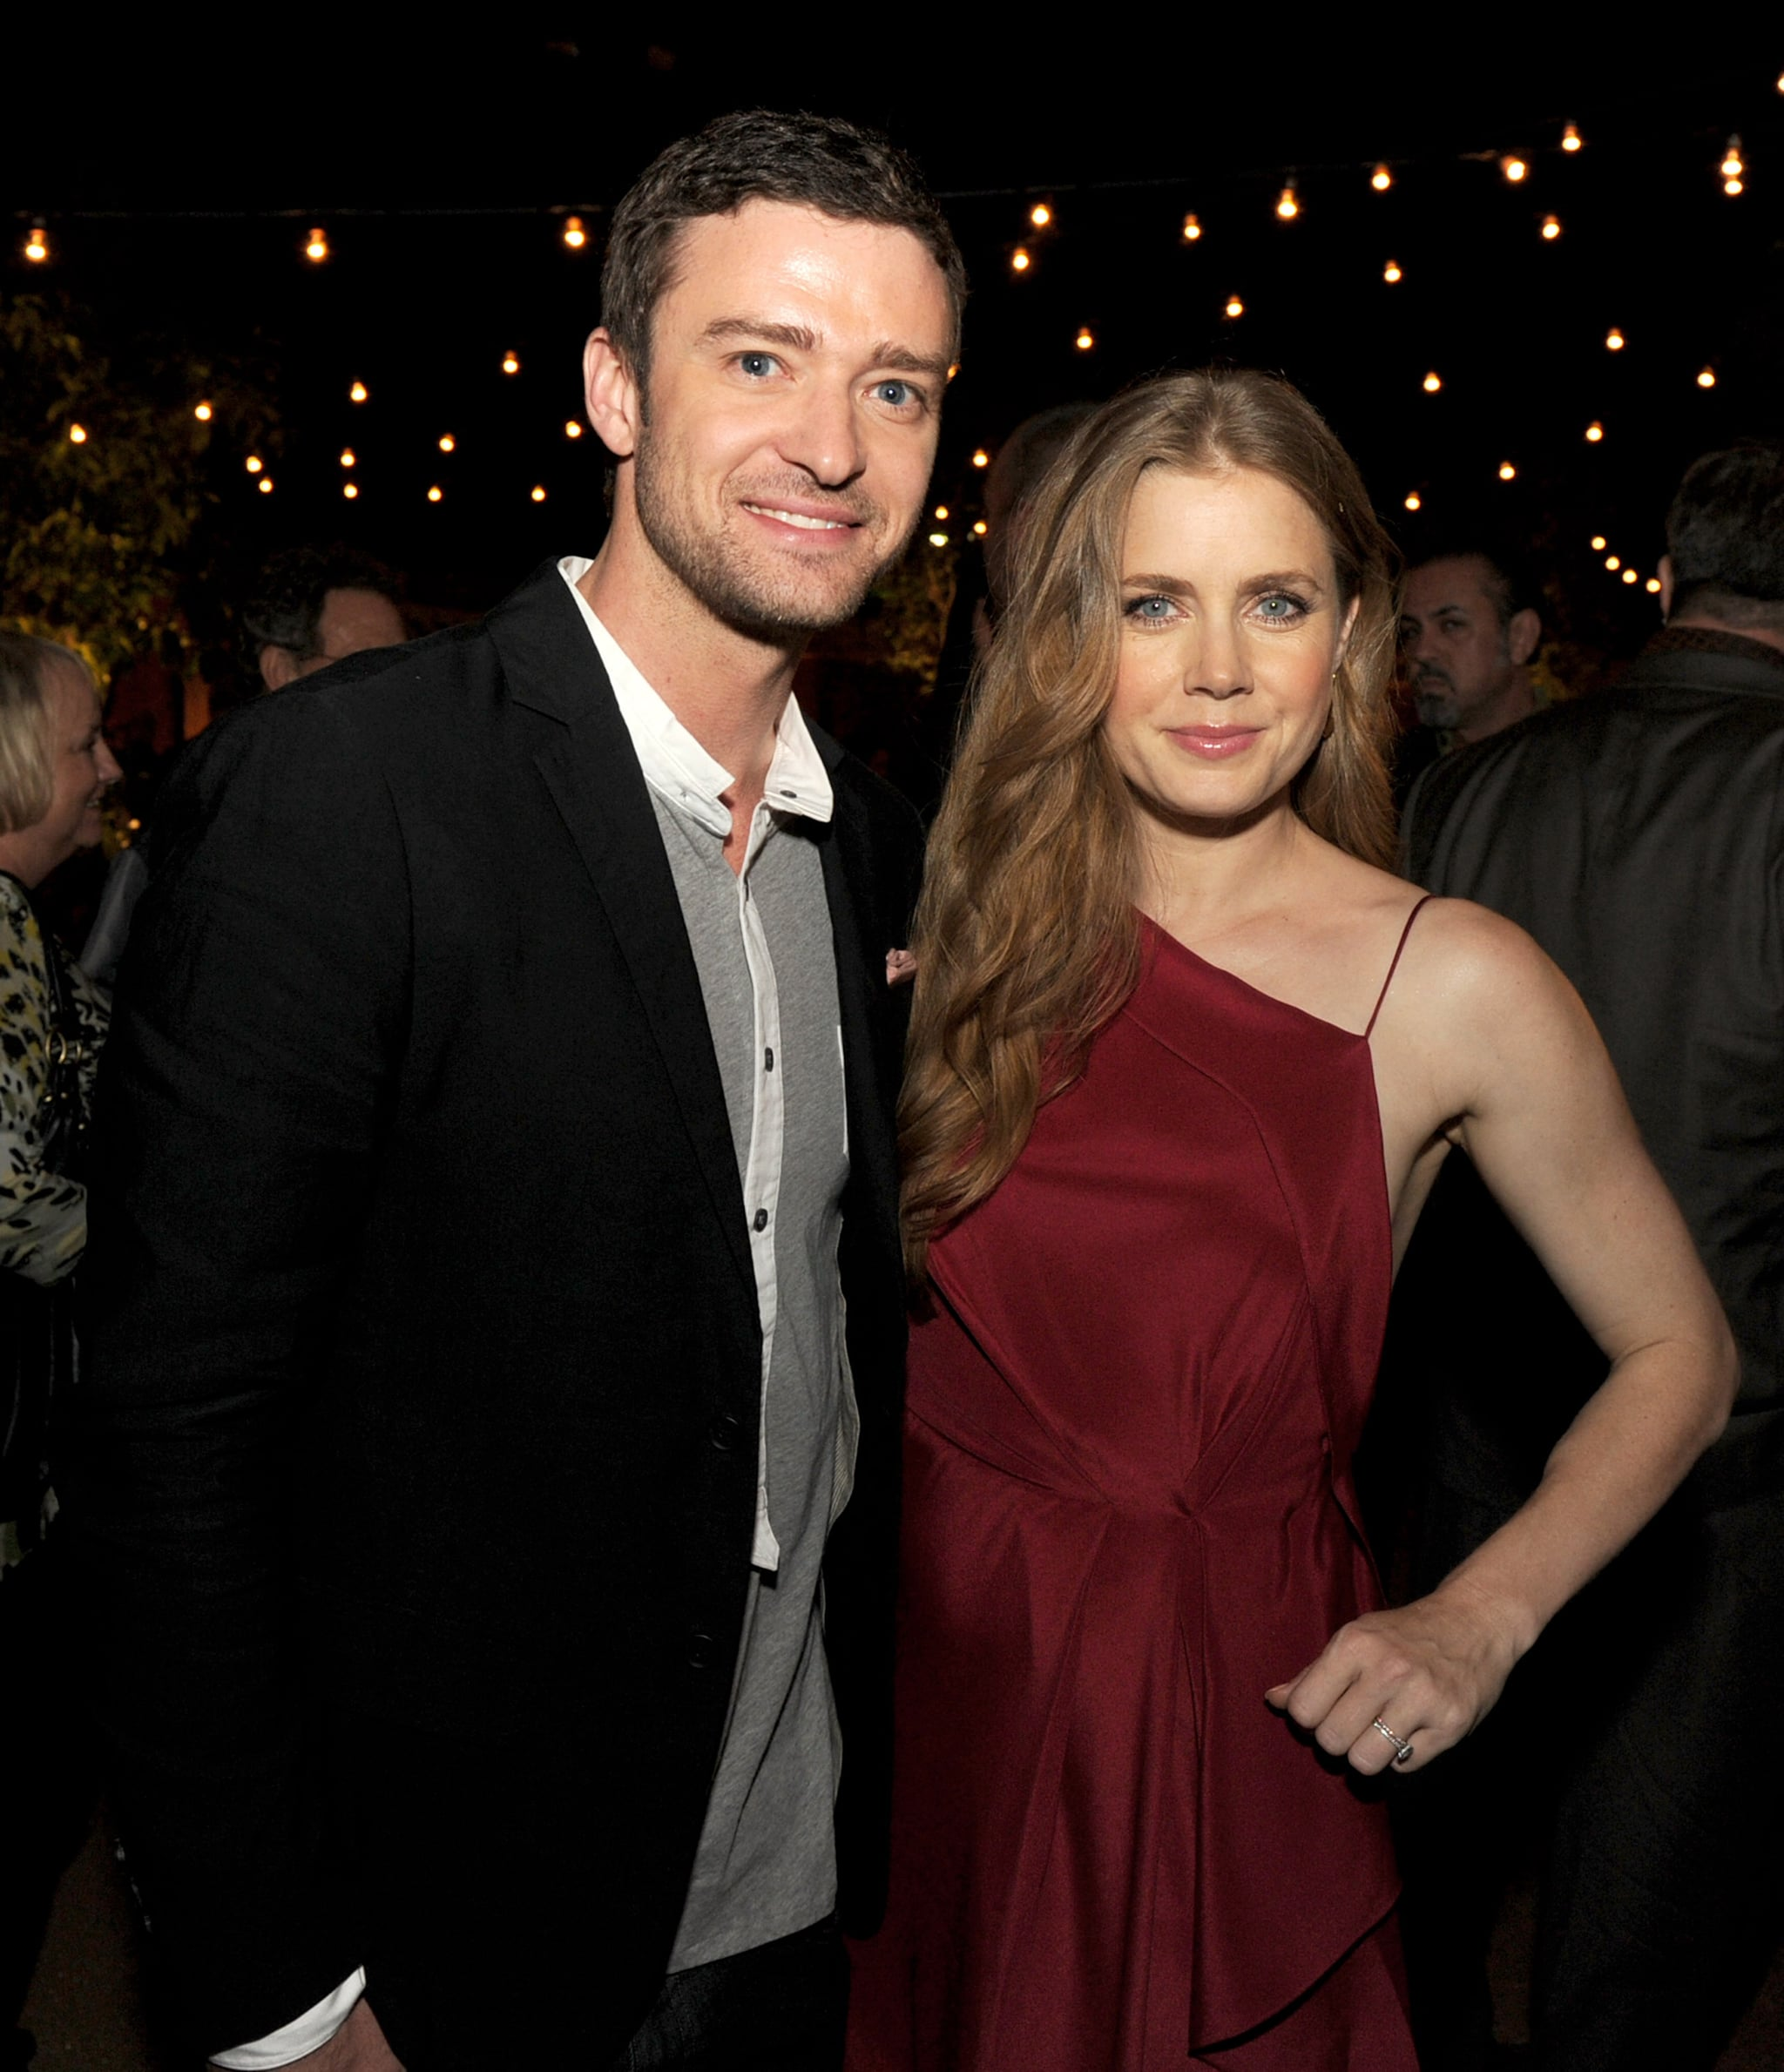 He and Amy Adams posed together at the afterparty for their film, Trouble With the Curve, in September 2012.